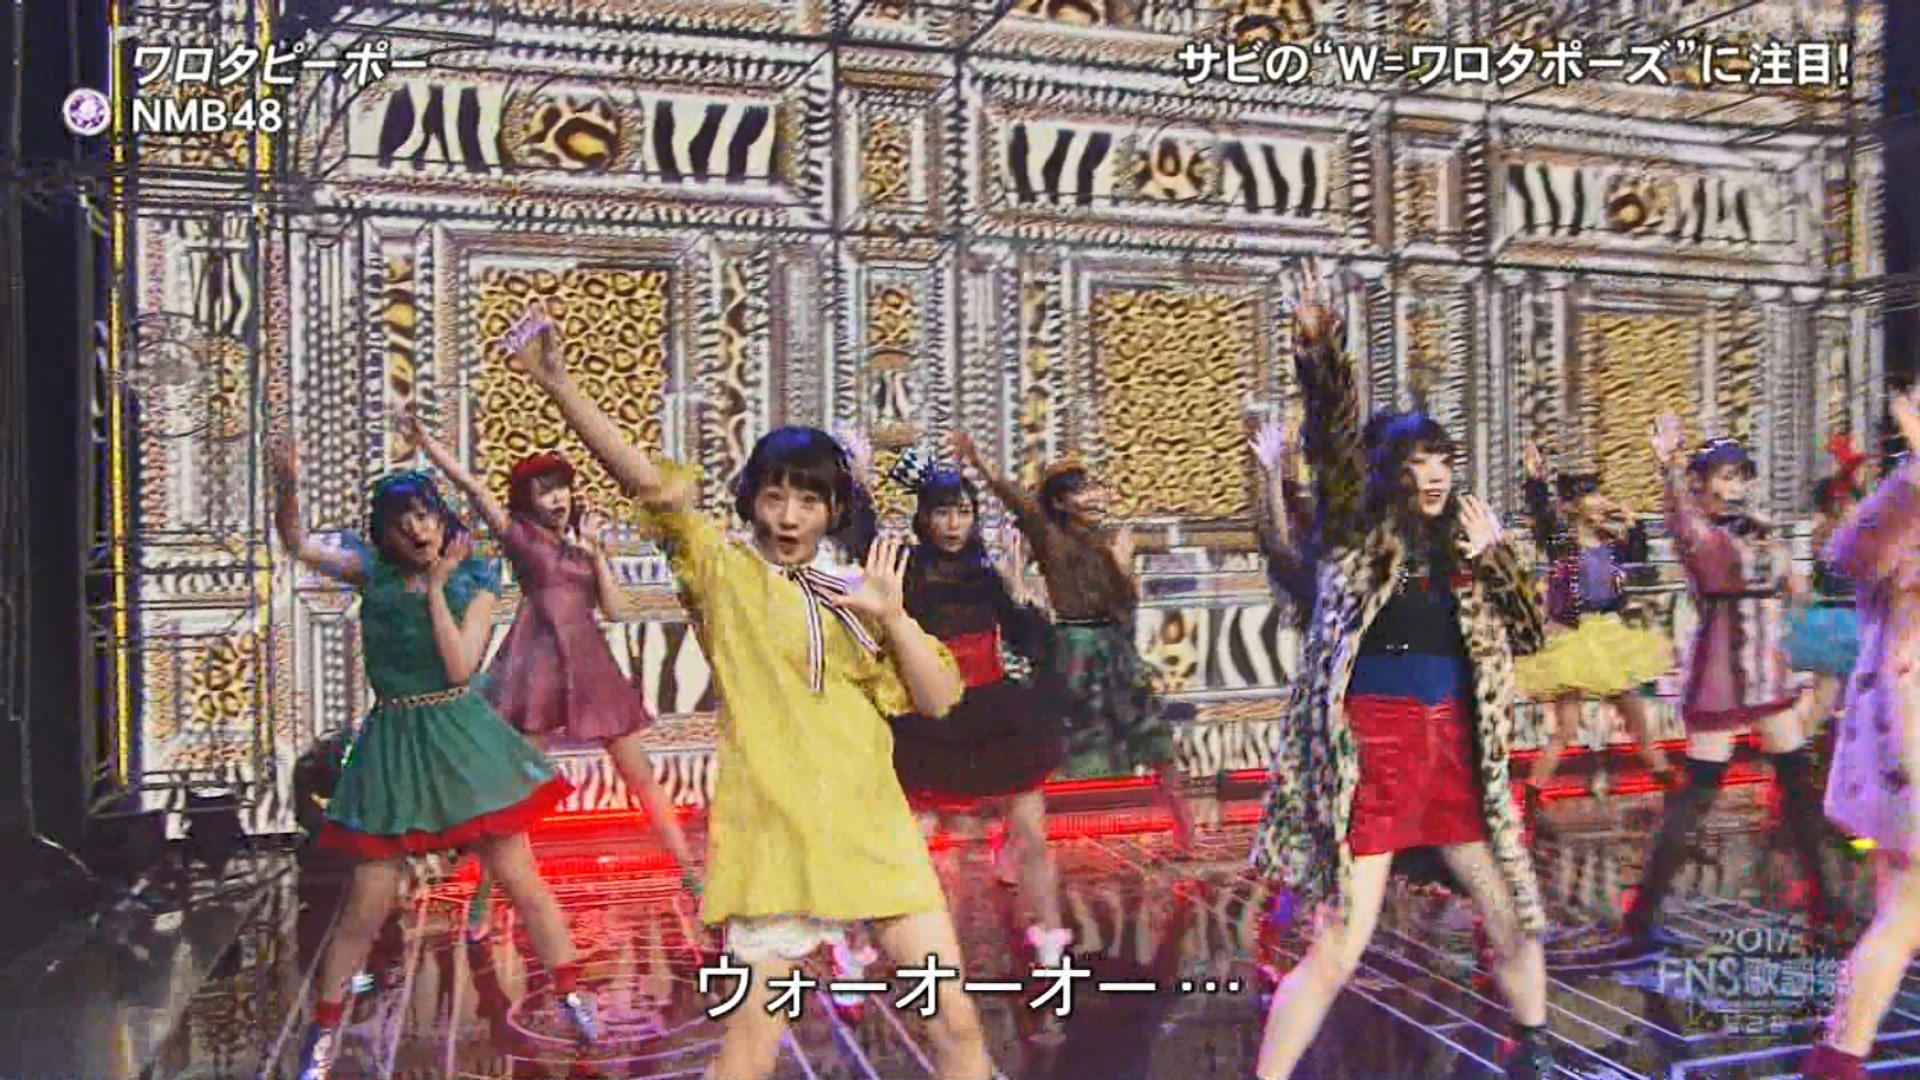 2017FNS歌謡祭第2夜・NMB48ワロタピーポーキャプ-086